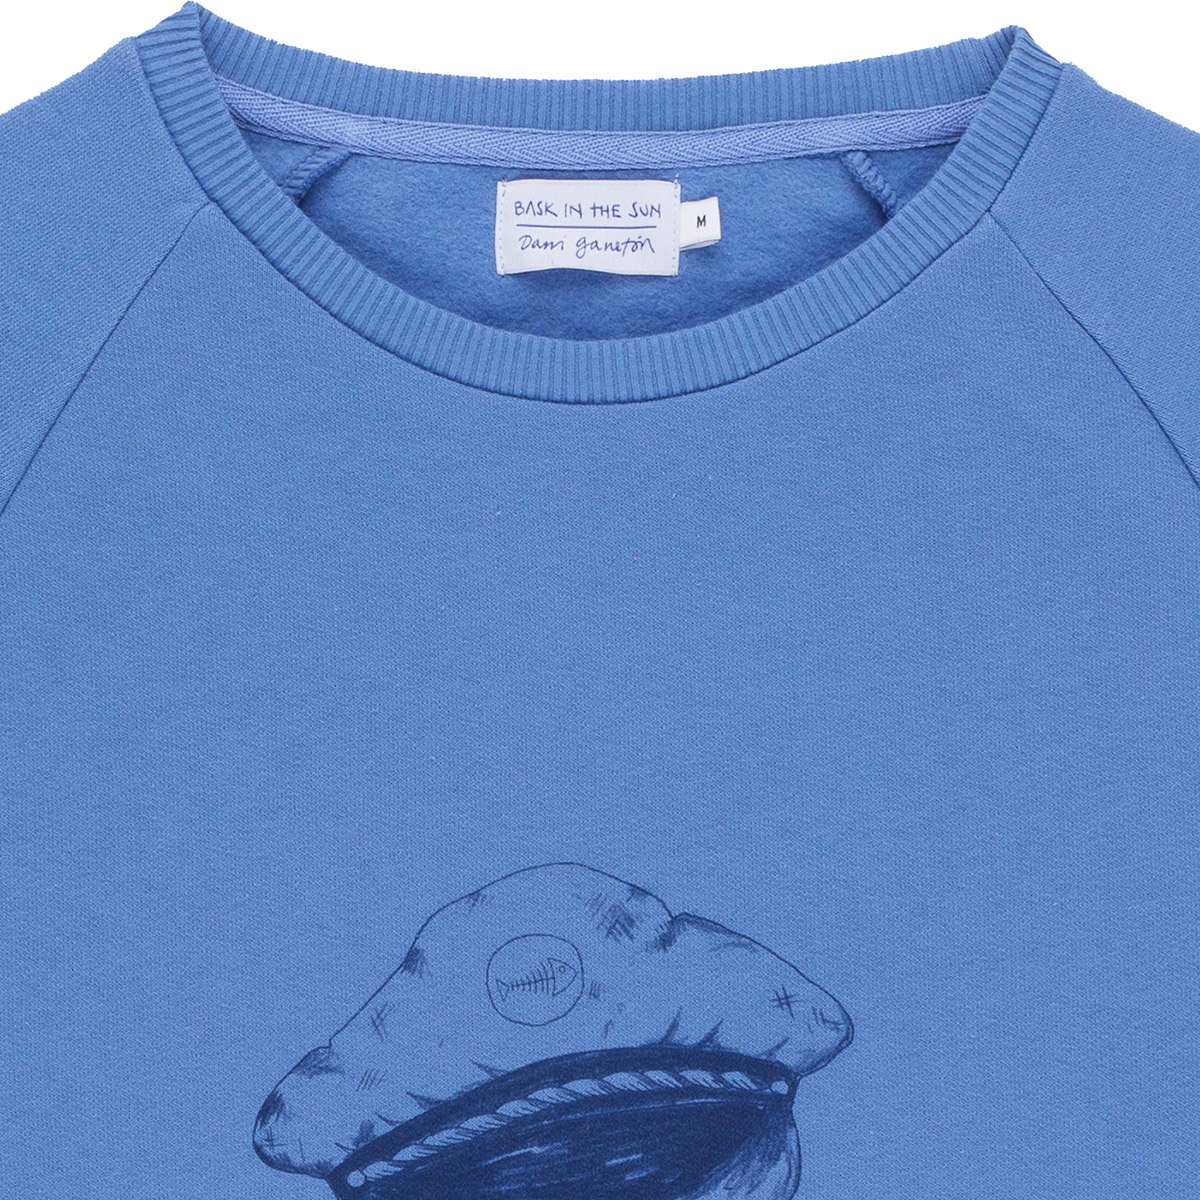 Sweat en coton bio blue seagull - Bask in the Sun num 2